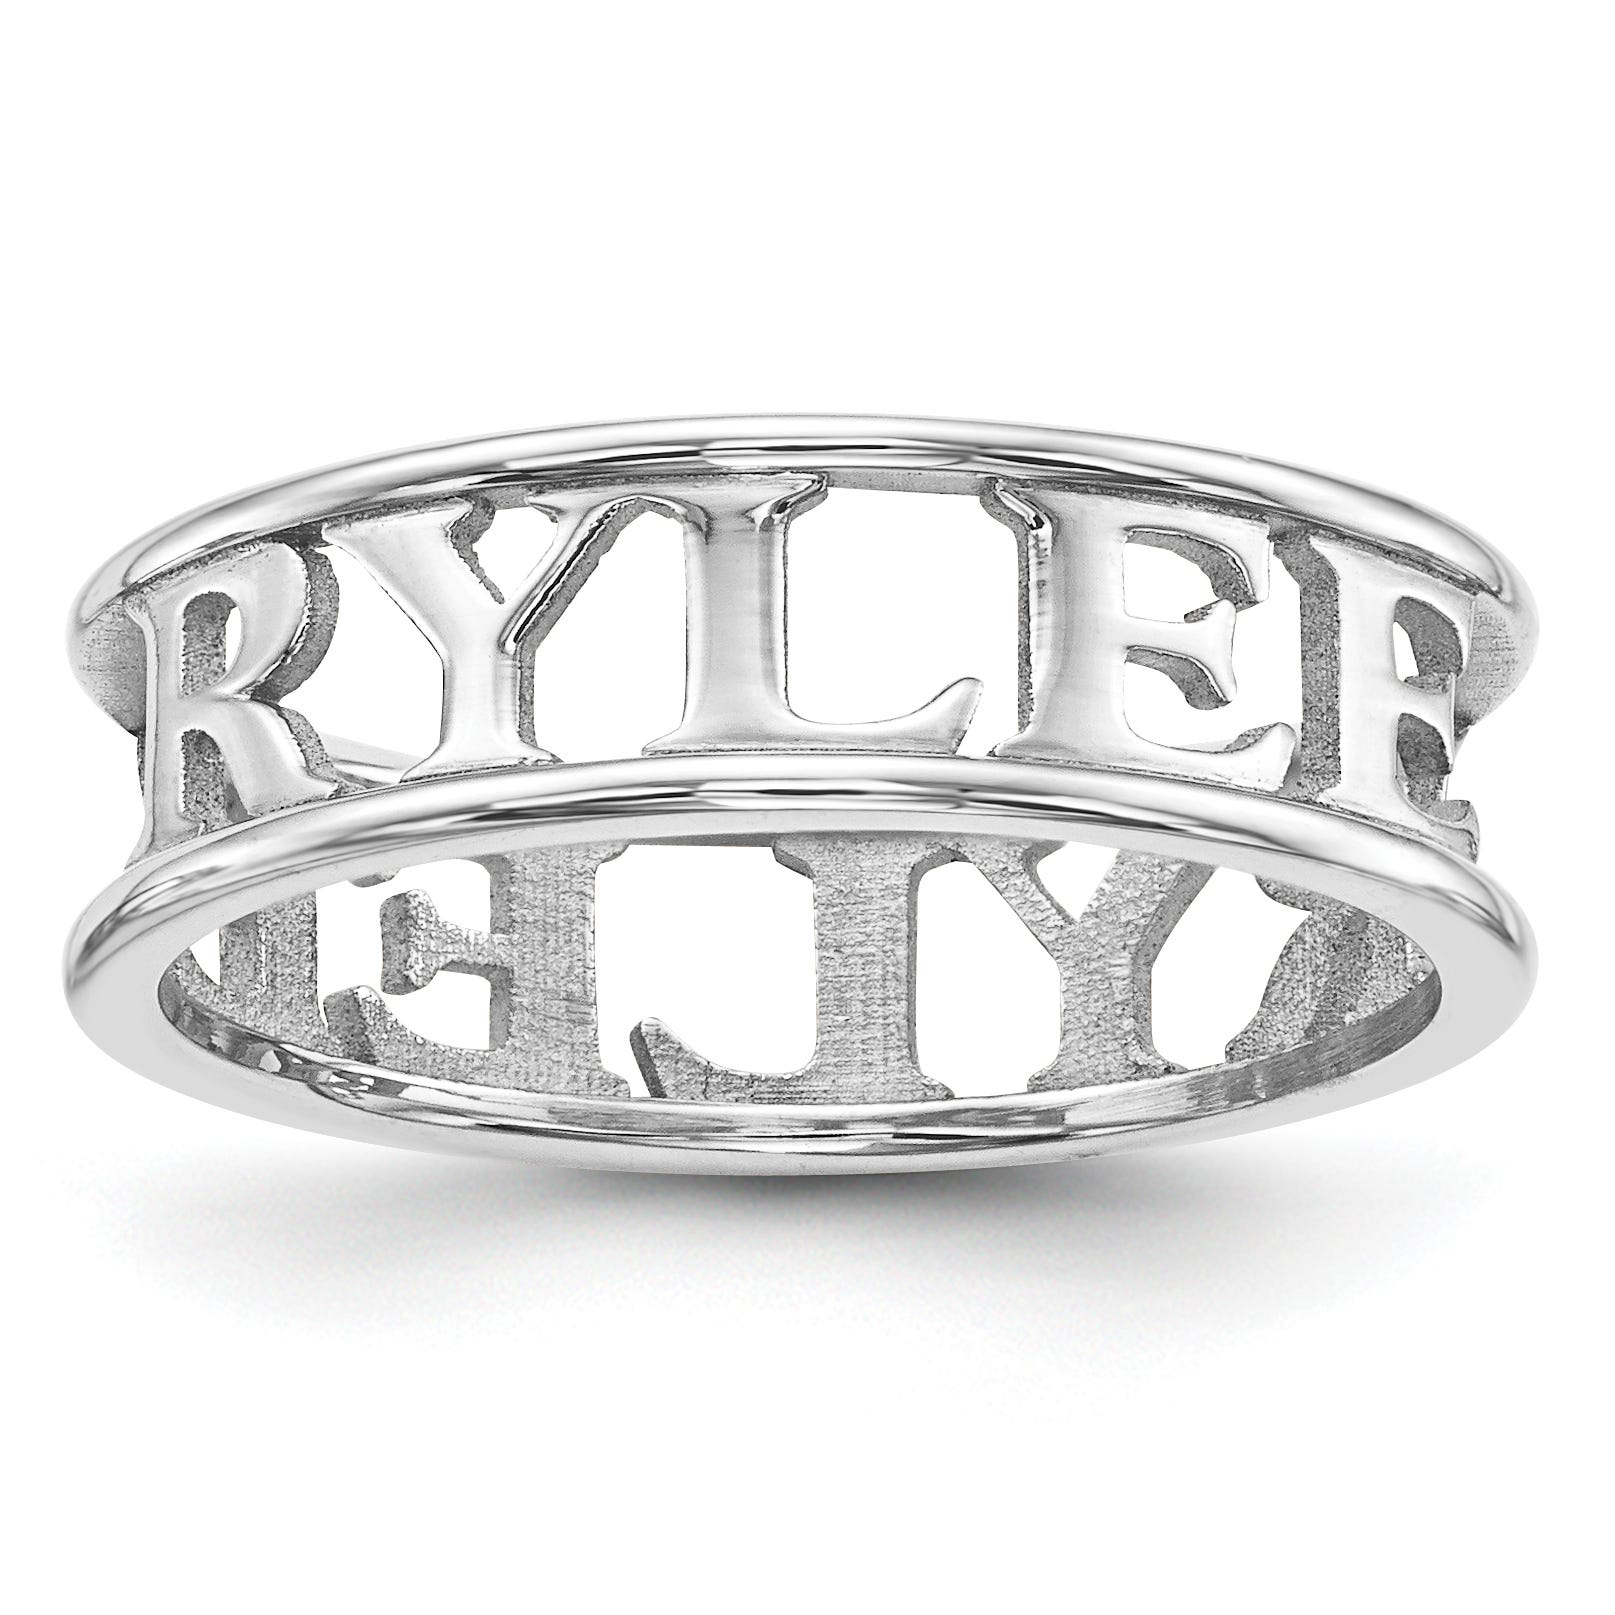 Casted High Polish Name Band in Sterling Silver (up to 9 letters)